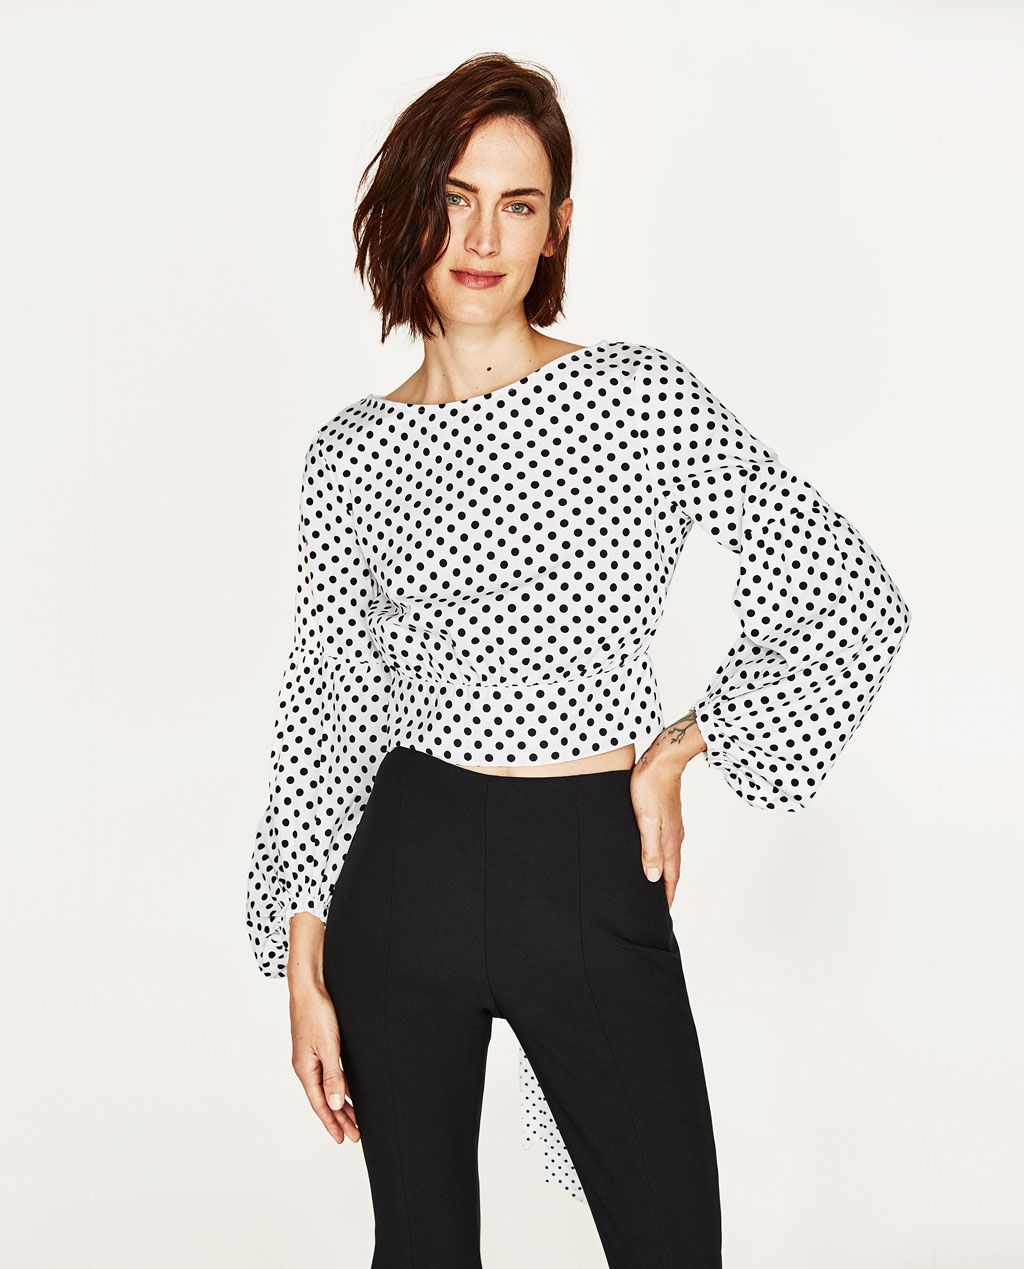 7dd1da28b04279 Image 1 of POLKA DOT TOP from Zara | Style | Polka dots, Blouse ...